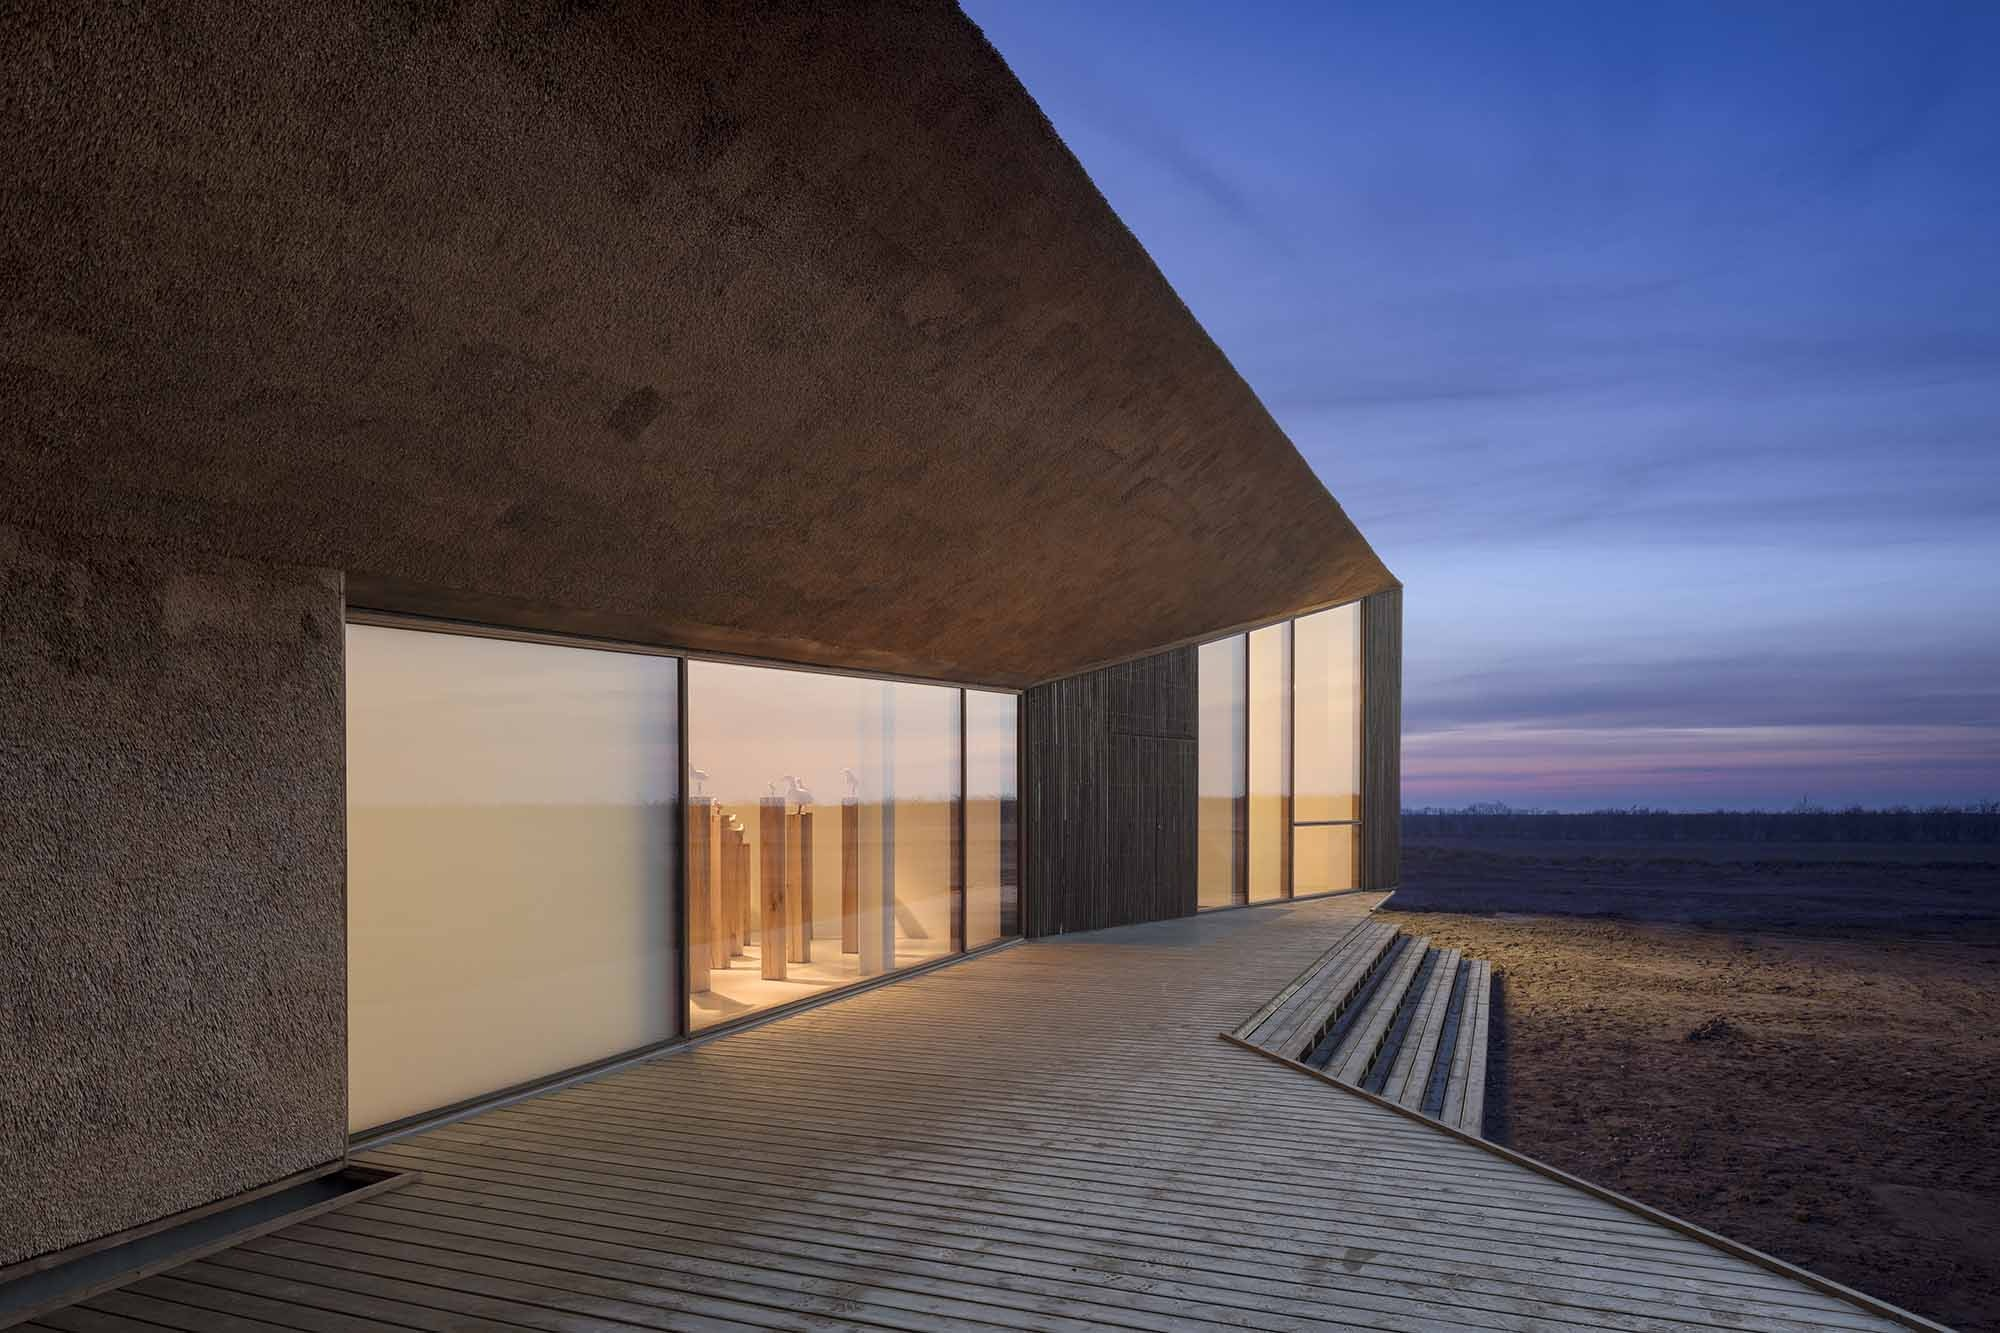 The recently redesigned Vadehavescentret in Ribe is the gateway to the Wadden Sea National Park.